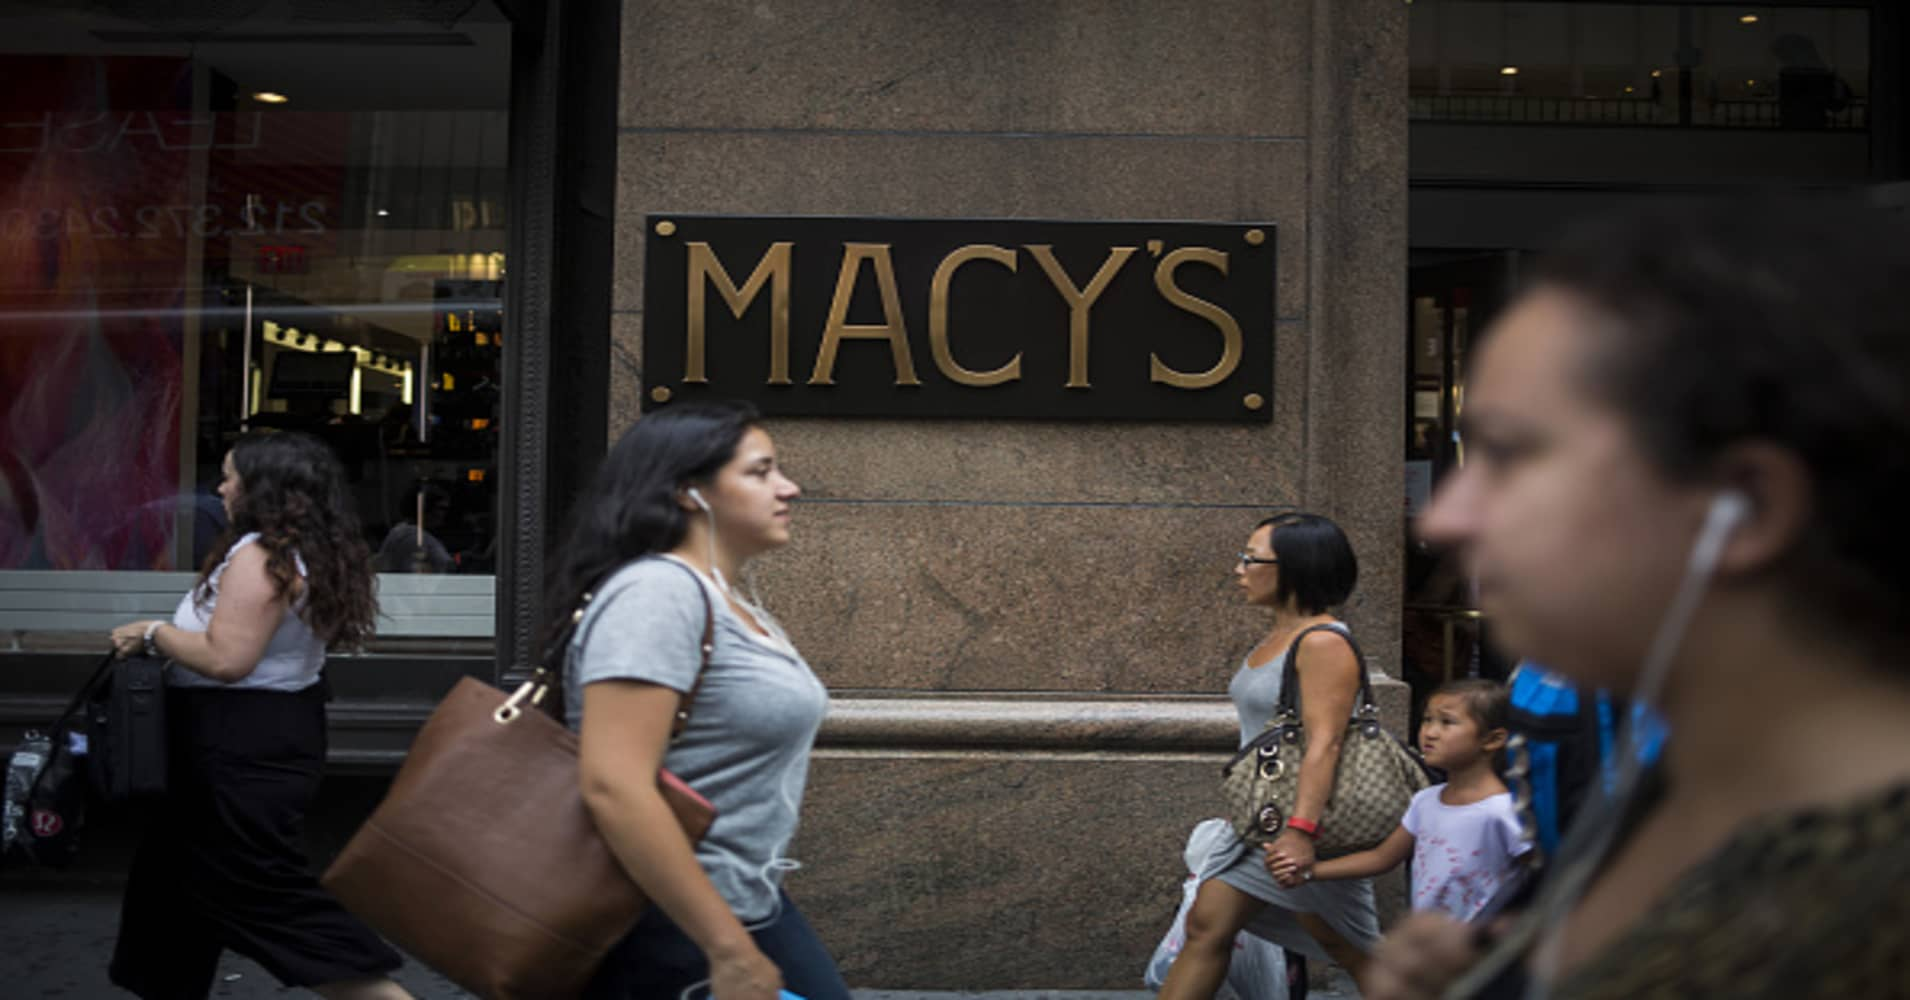 Macy's shares tumble as department store struggles to grow sales